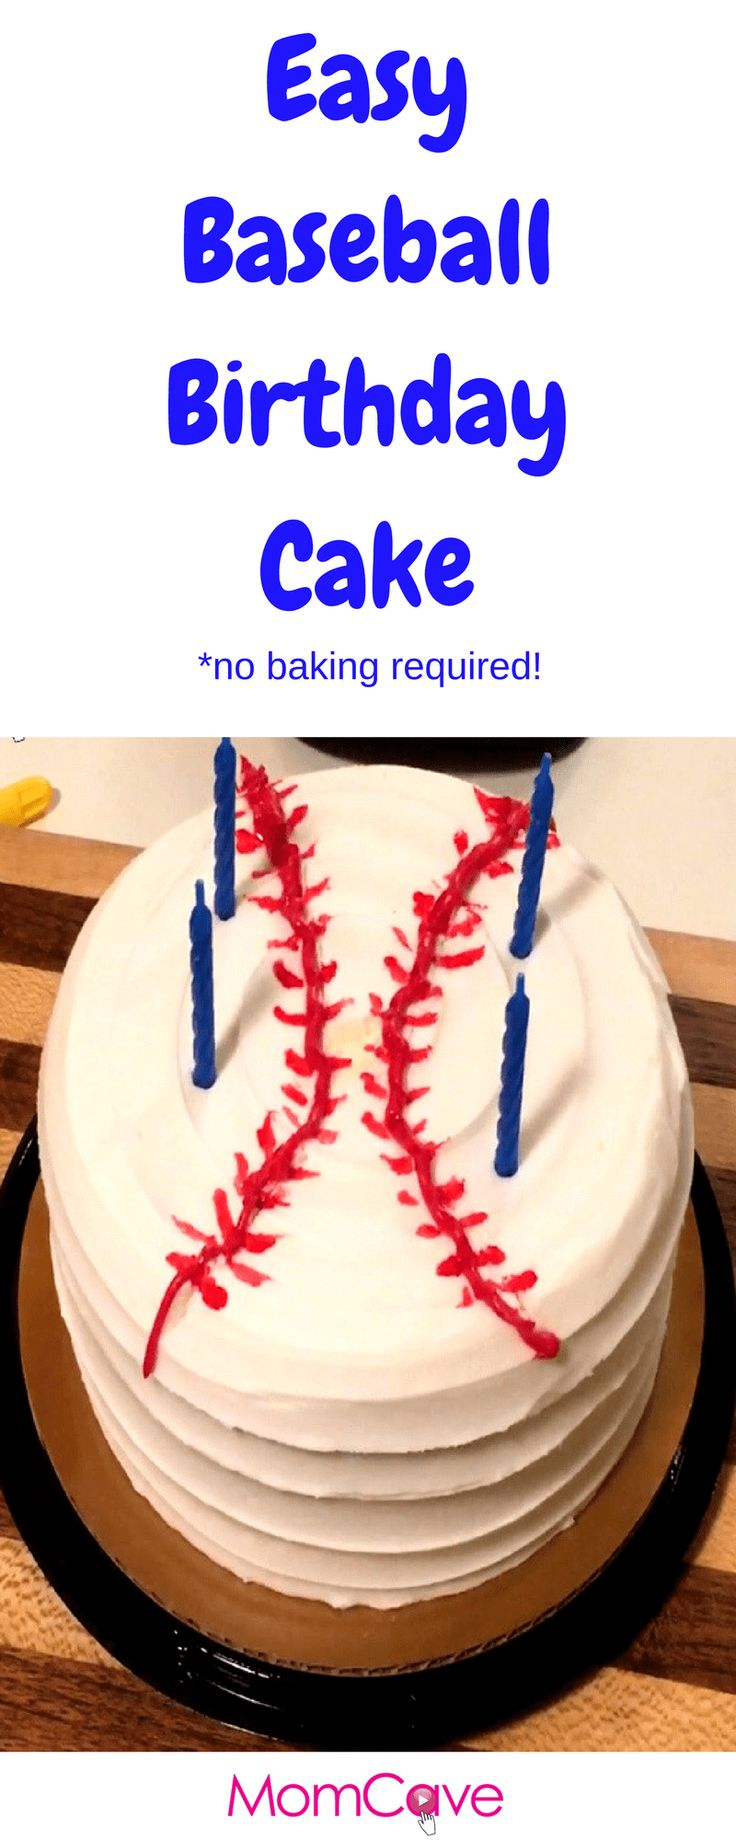 Easy Baseball Birthday Cake for Slacker Moms *No Baking Required* from MomCaveTV.com. Fake bake this easy baseball cake like a pro!